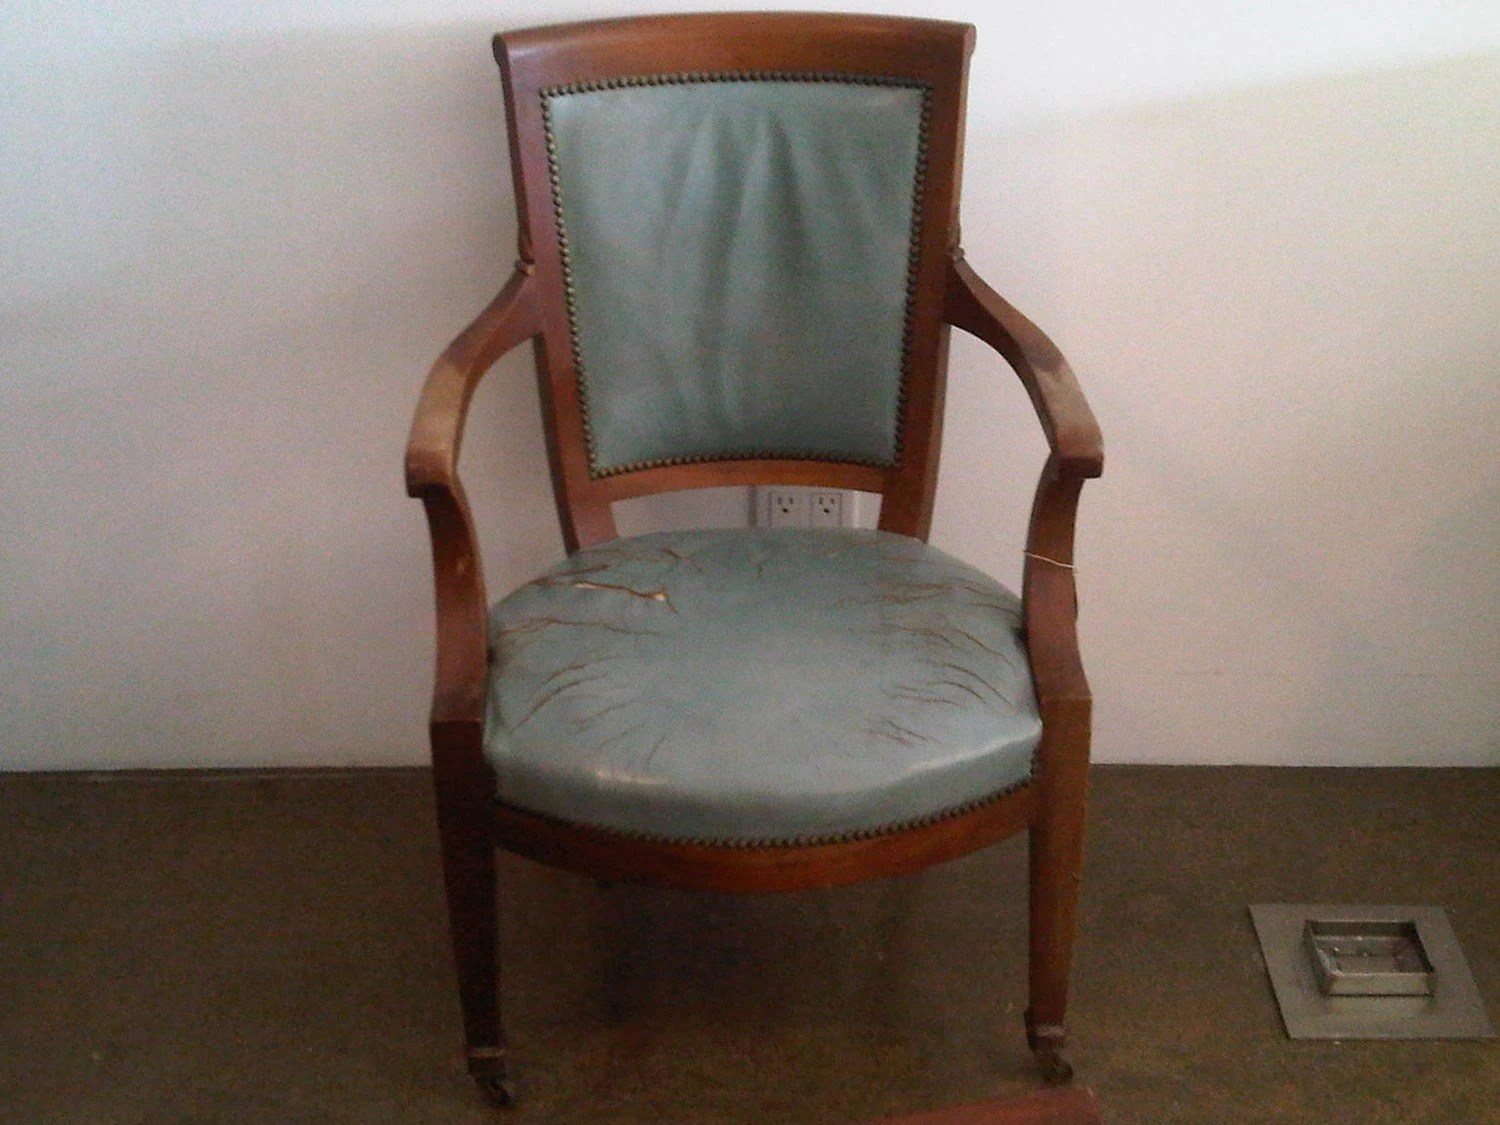 Blue Leather Chair Antique Robins Egg Blue Leather Chair